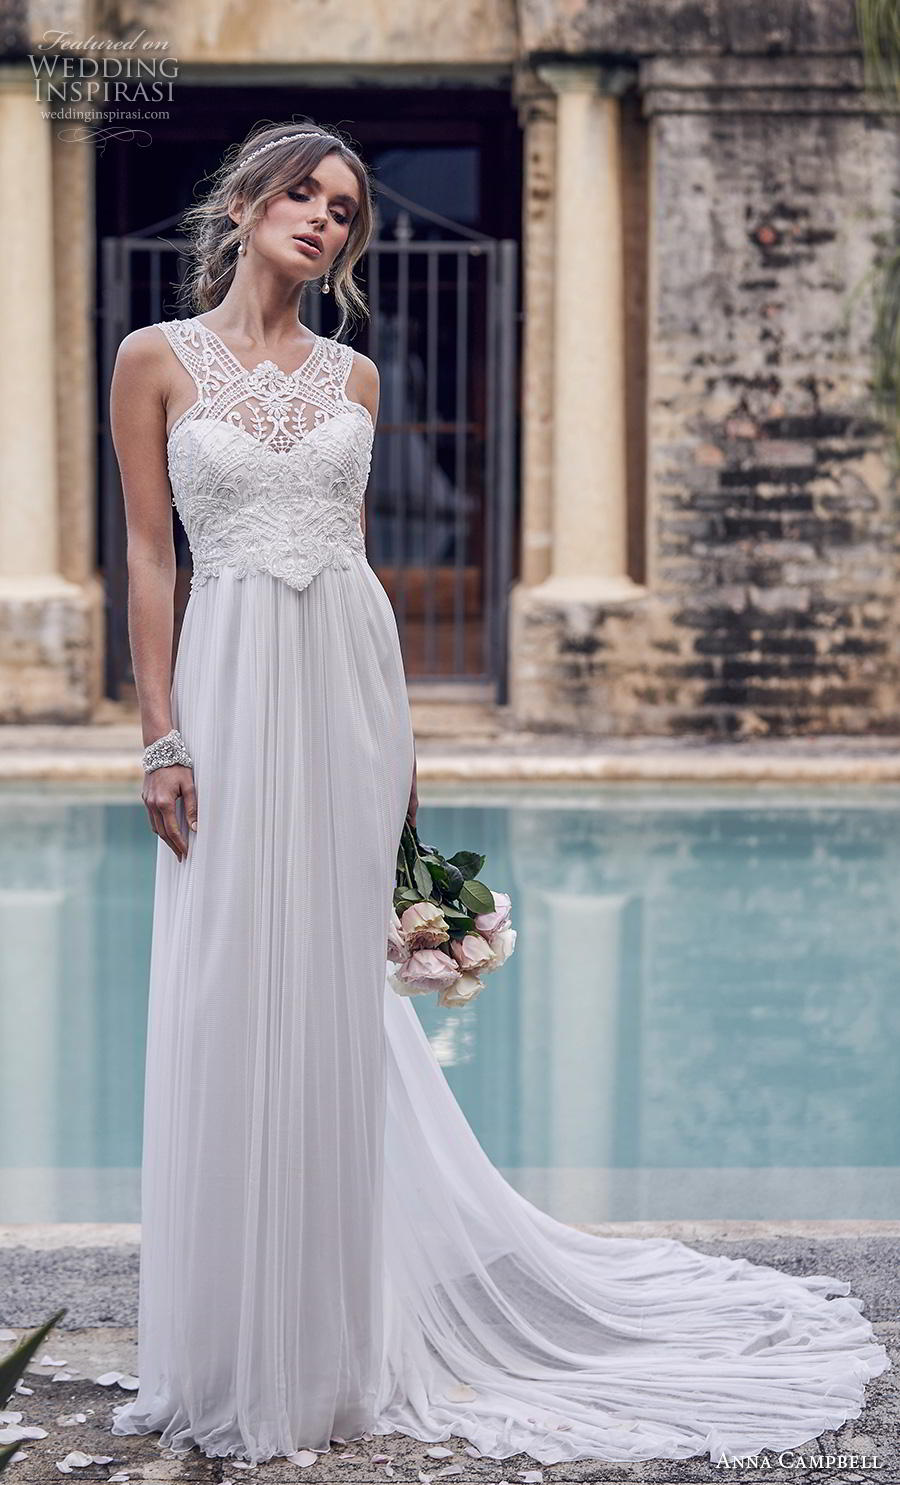 anna campbell 2019 bridal sleeveless halter neck heavily embellished bodice tulle skirt elegant grecian column wedding dress rasor back chapel train (6) mv